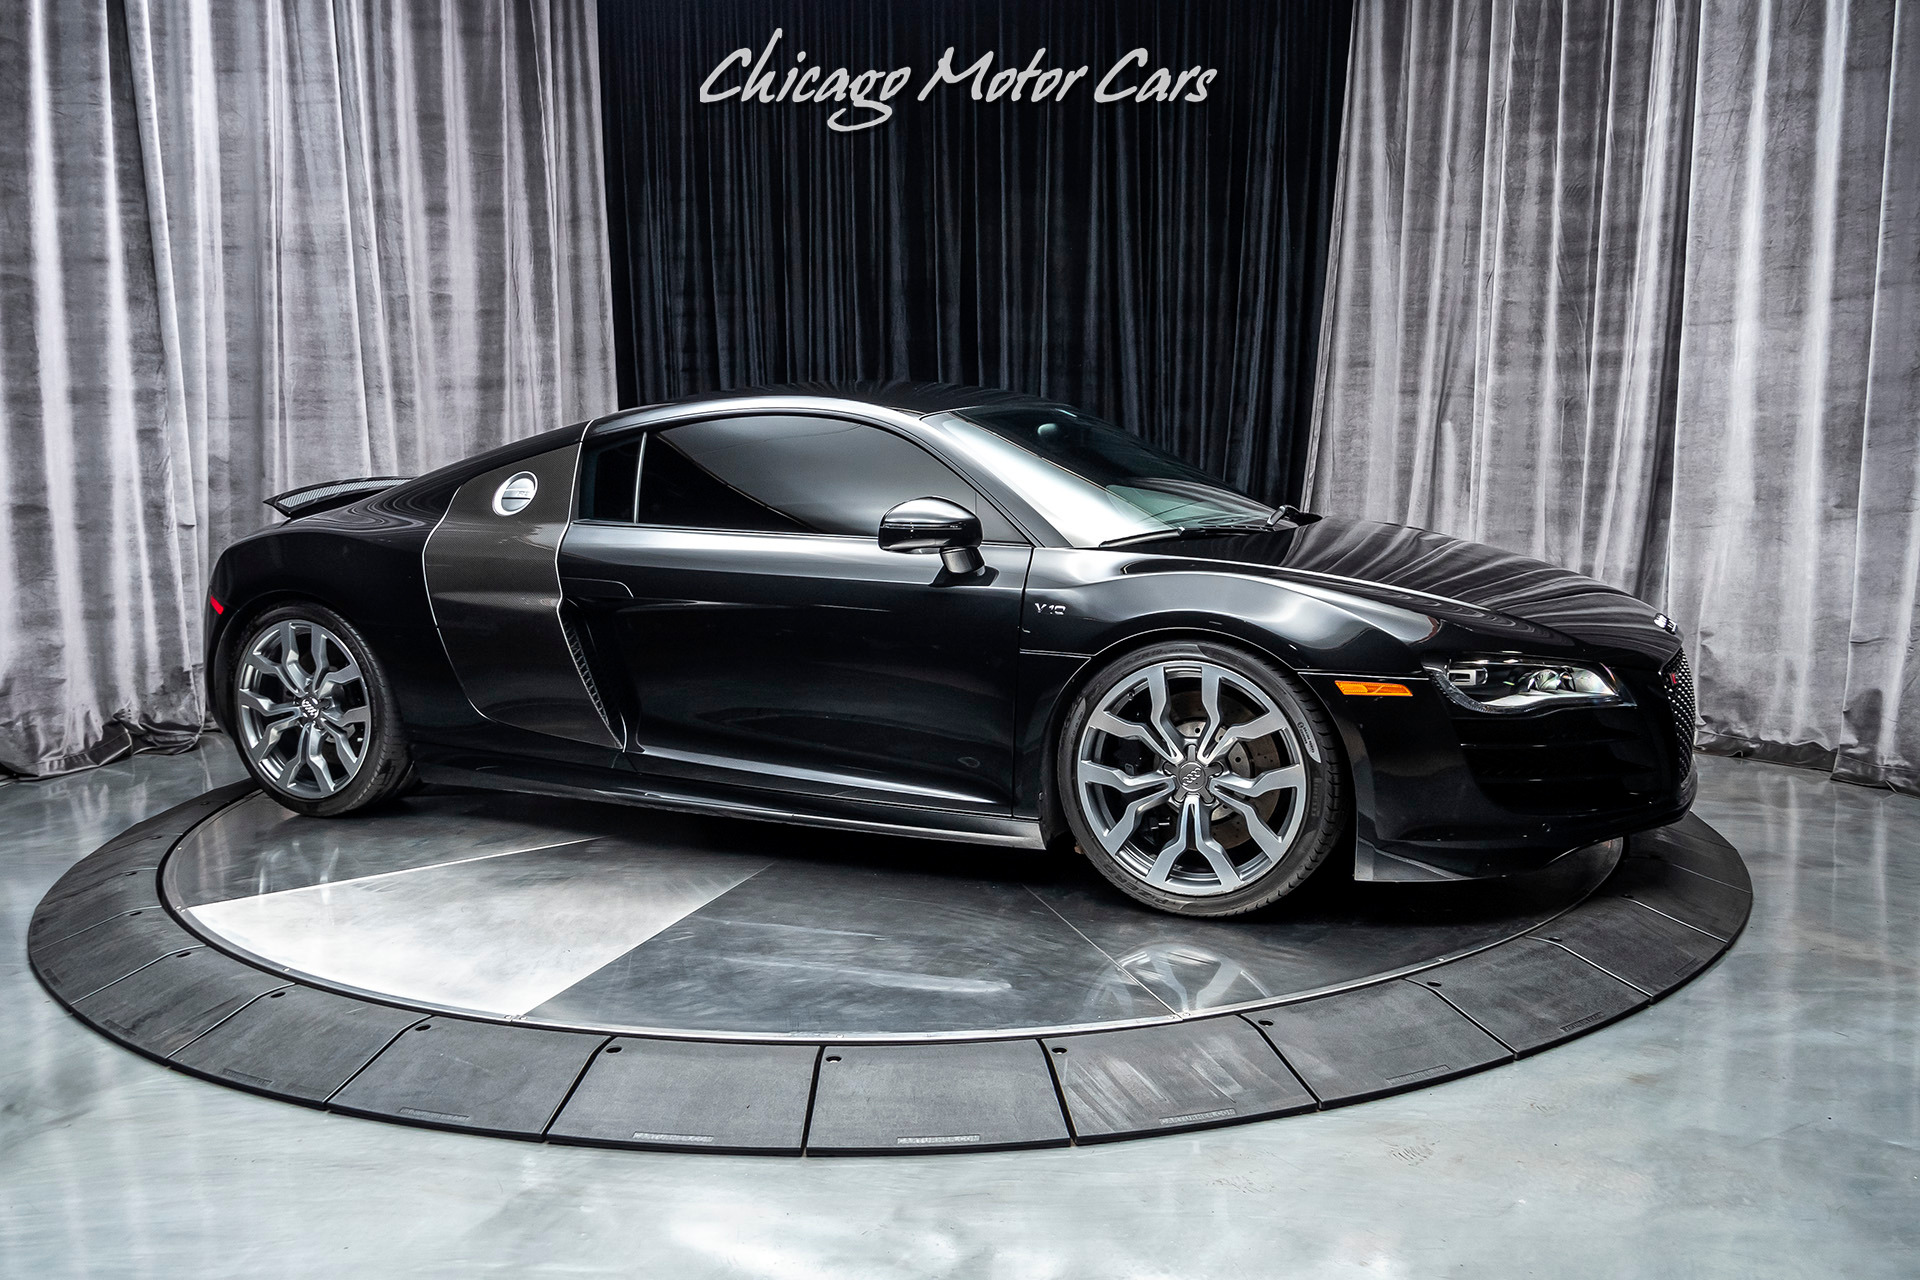 Used-2011-Audi-R8-52-quattro-Coupe-Original-MSRP-167k-UPGRADES-ENHANCED-LEATHER-PACKAGE